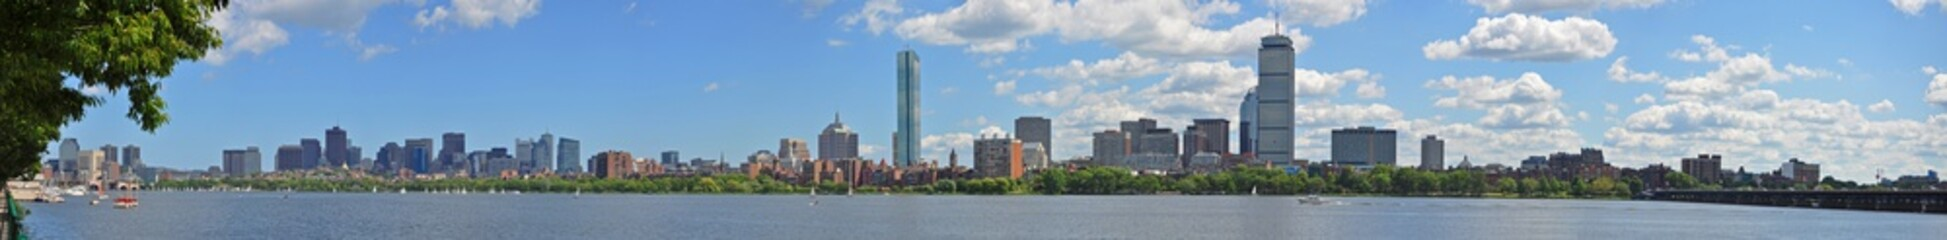 Boston Back Bay Skyline John Hancock Tower and Prudential Center, viewed from Cambridge, Boston, Massachusetts, USA.